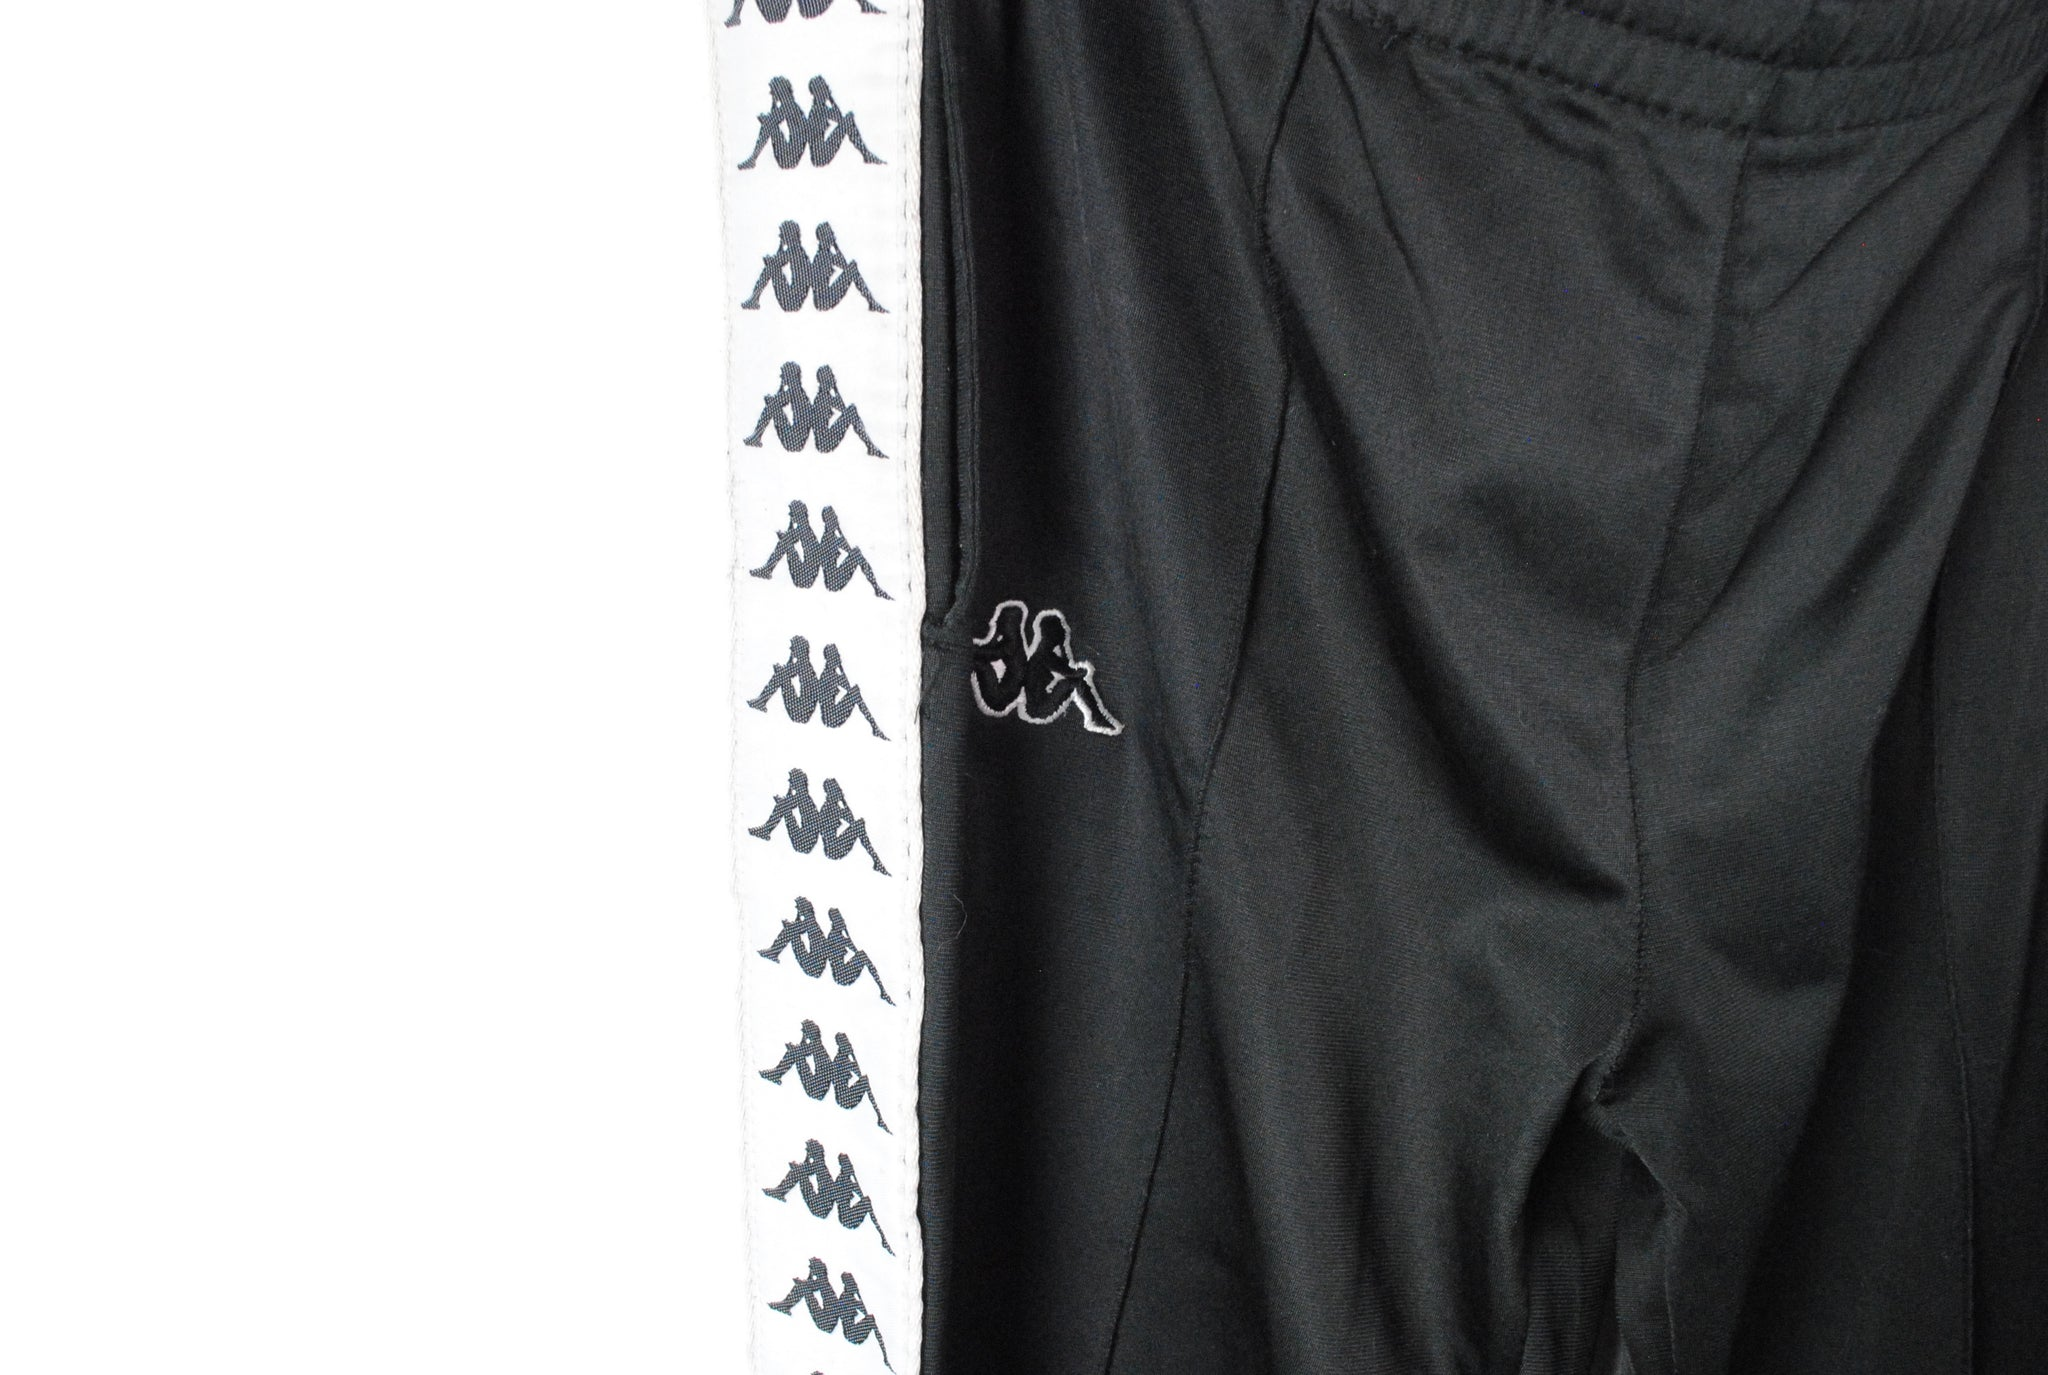 Vintage Kappa Tracksuit Small / Medium